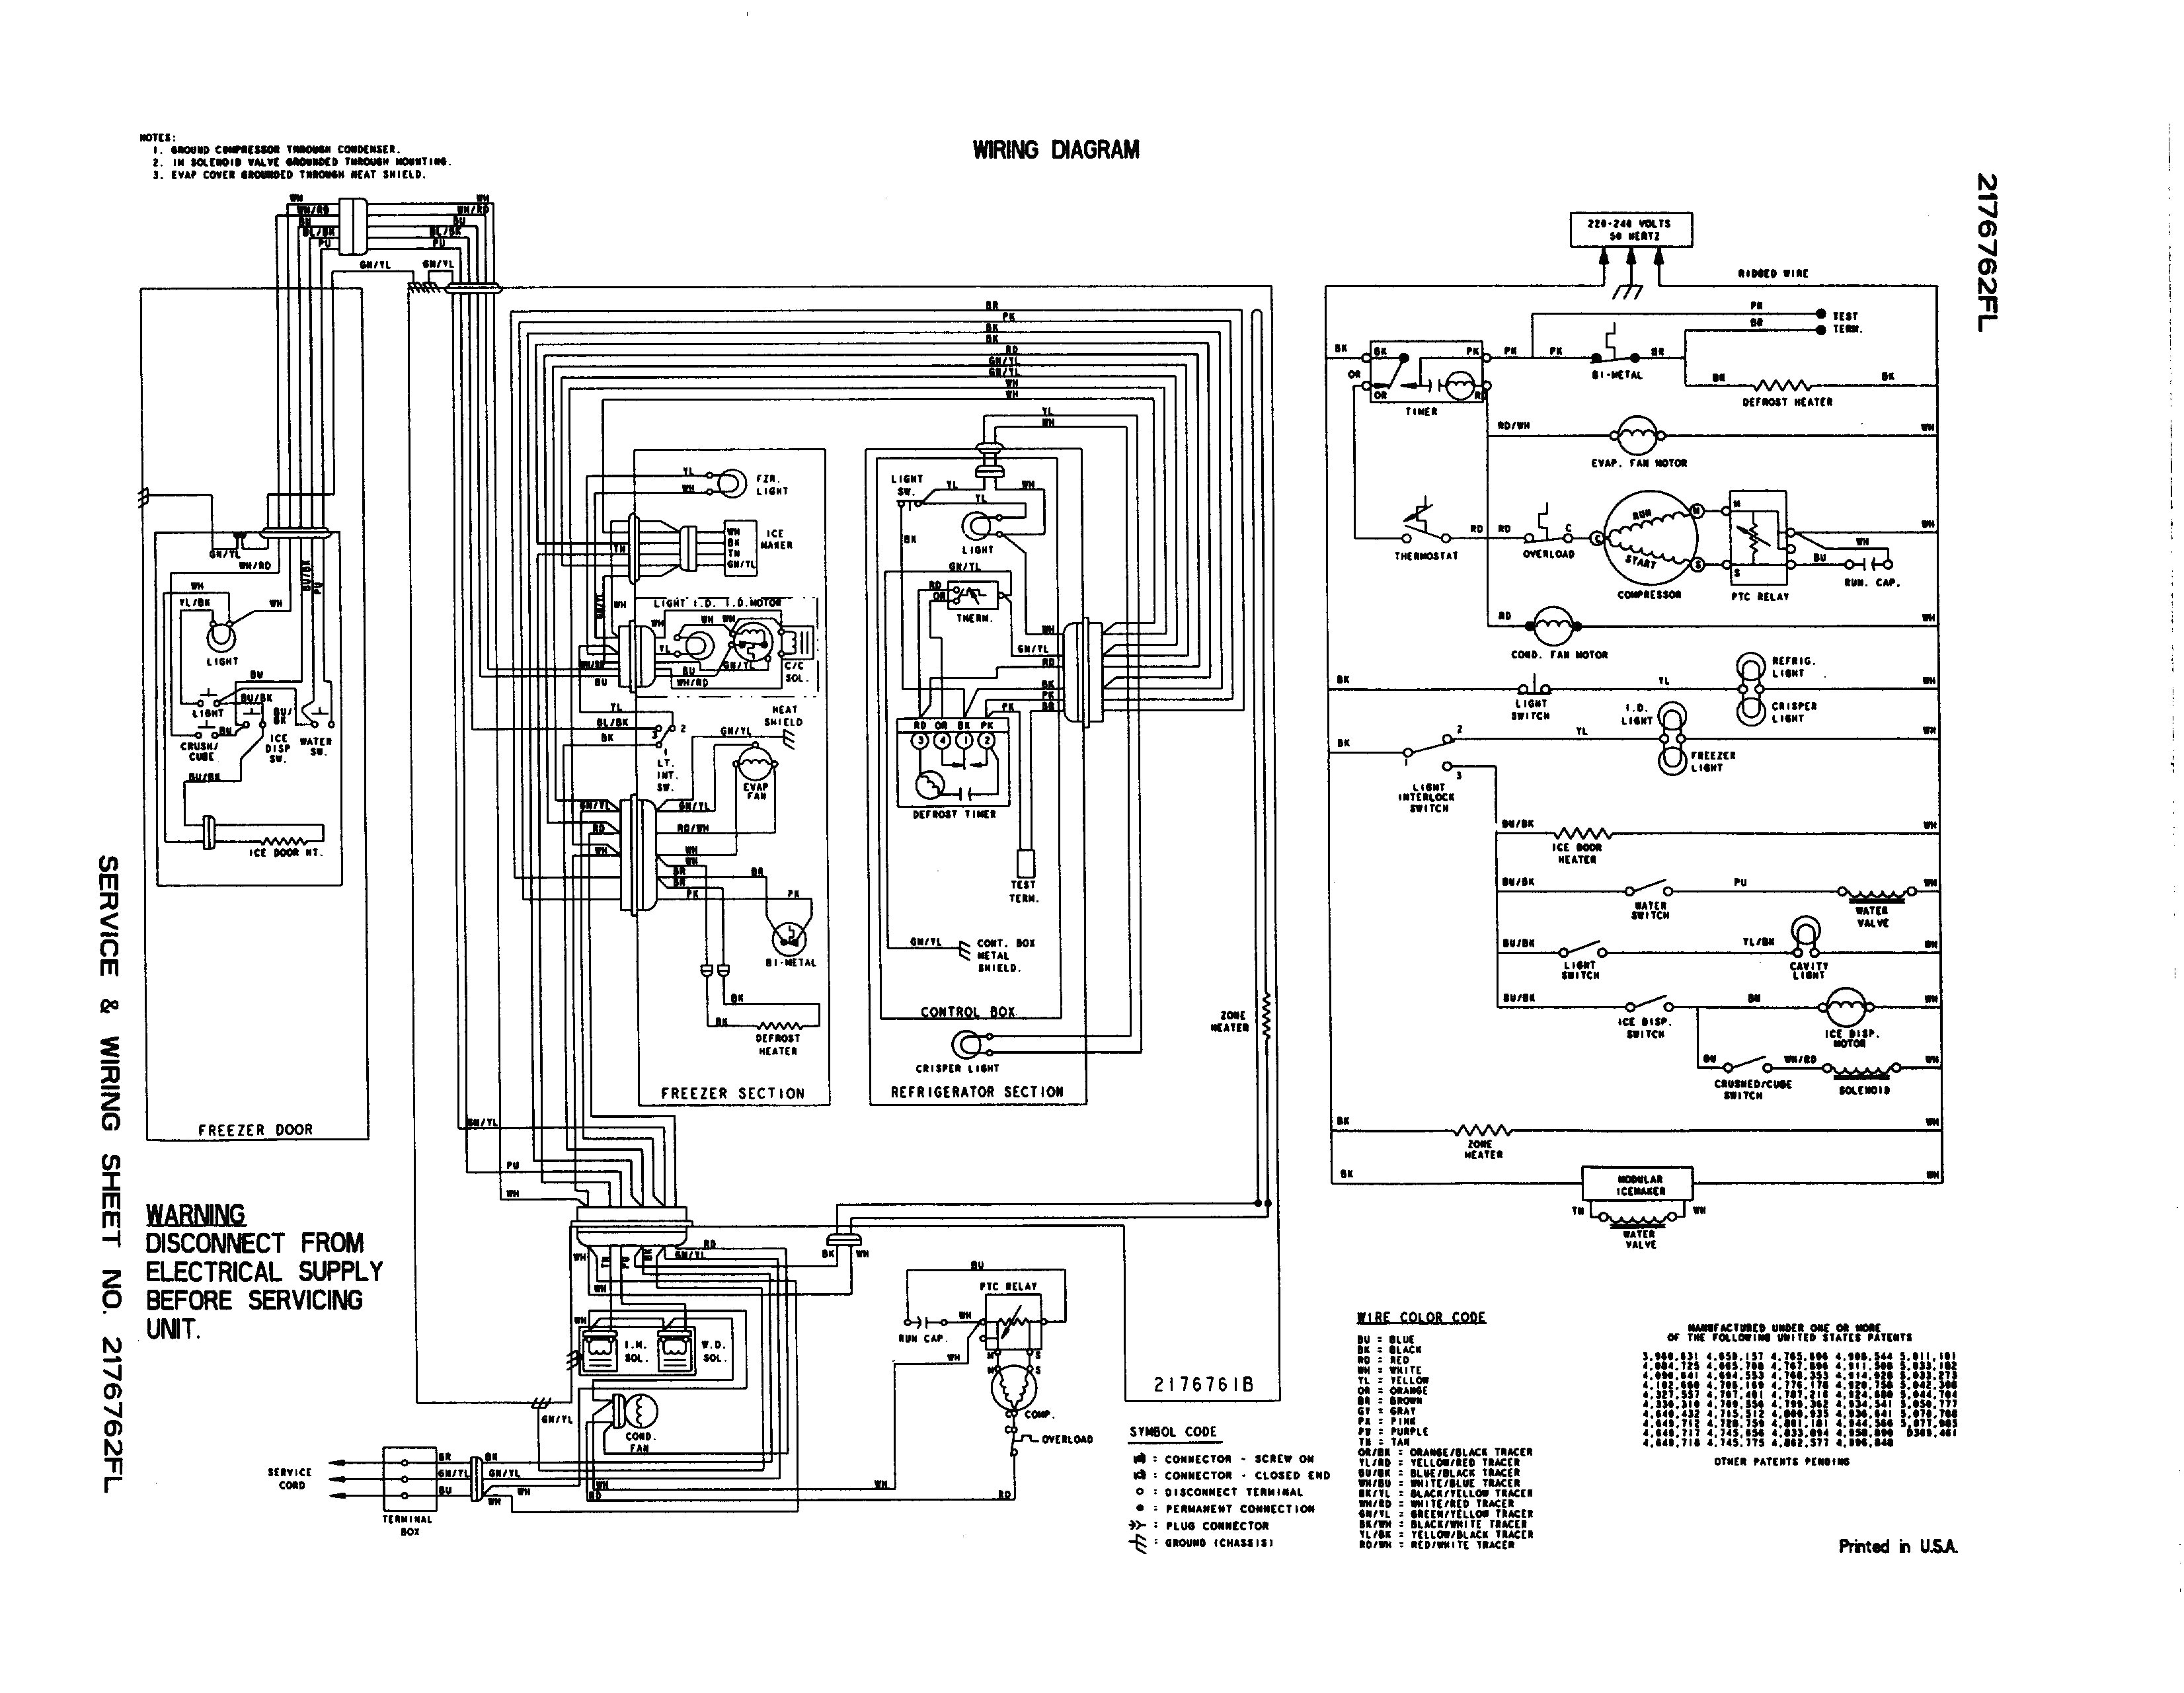 Wiring Diagram For Ge Refrigerator from i0.wp.com